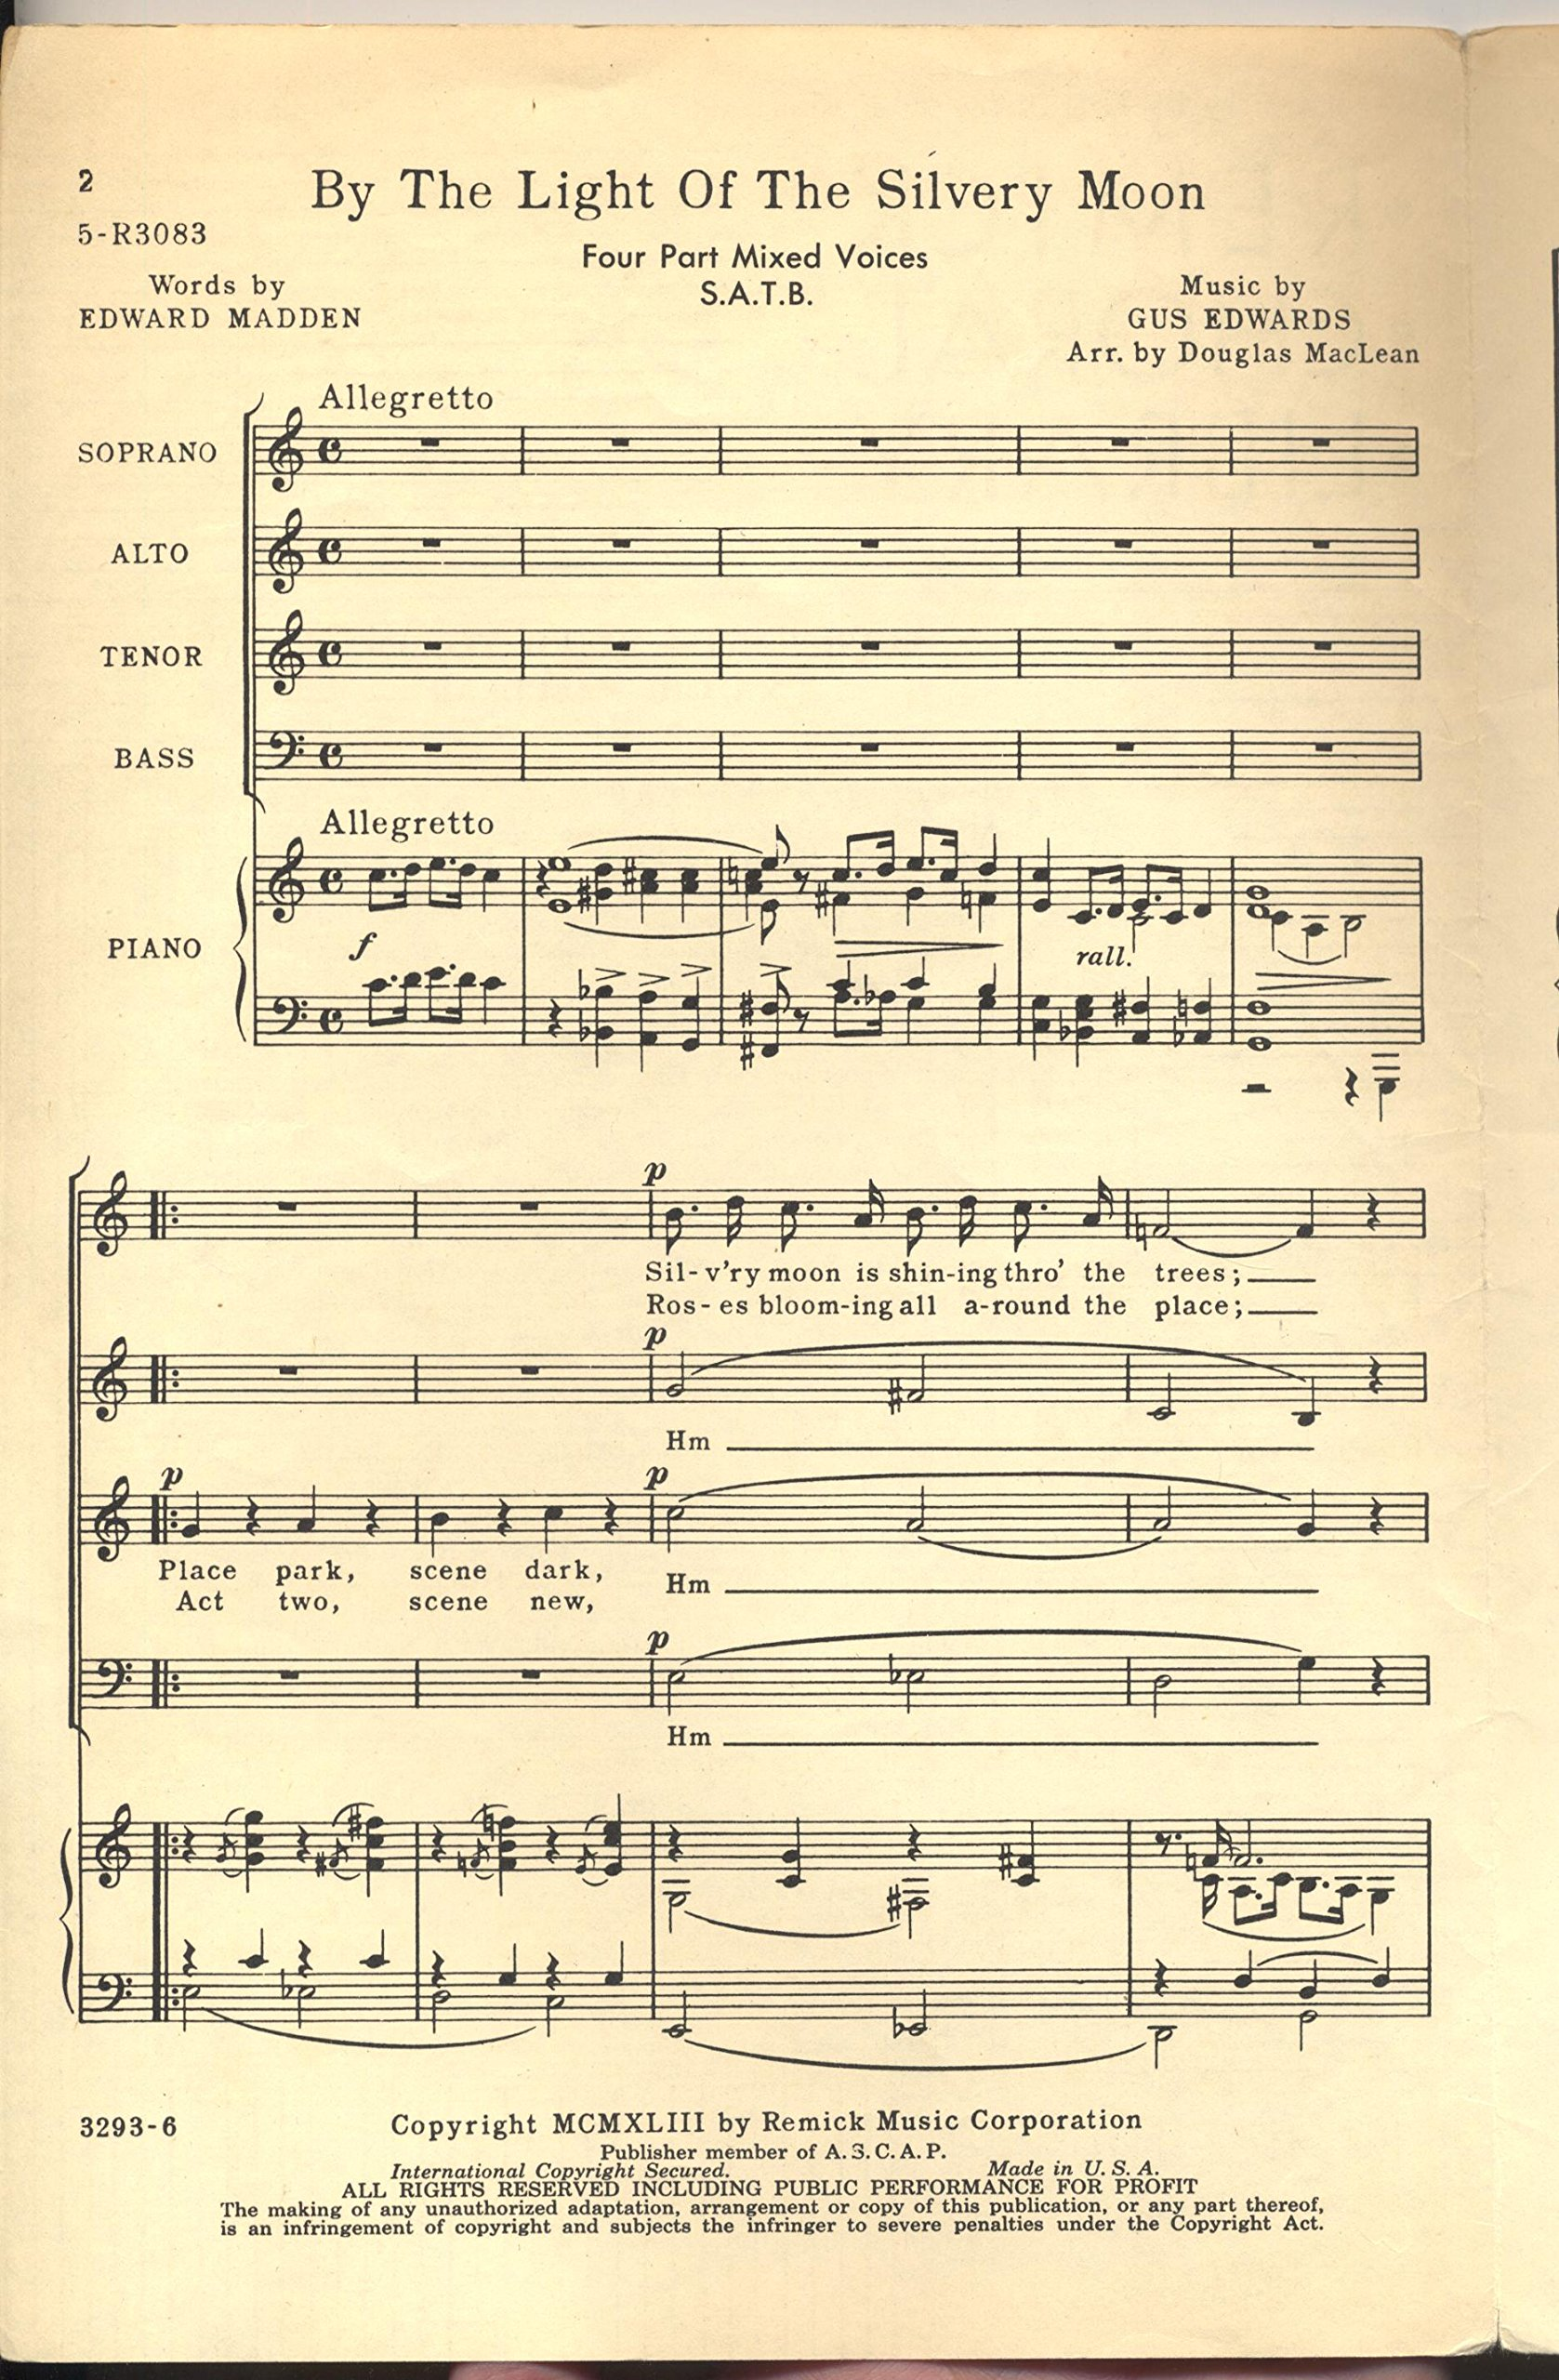 By the Light of the Silvery Moon SATB Edward Madden Gus Edwards